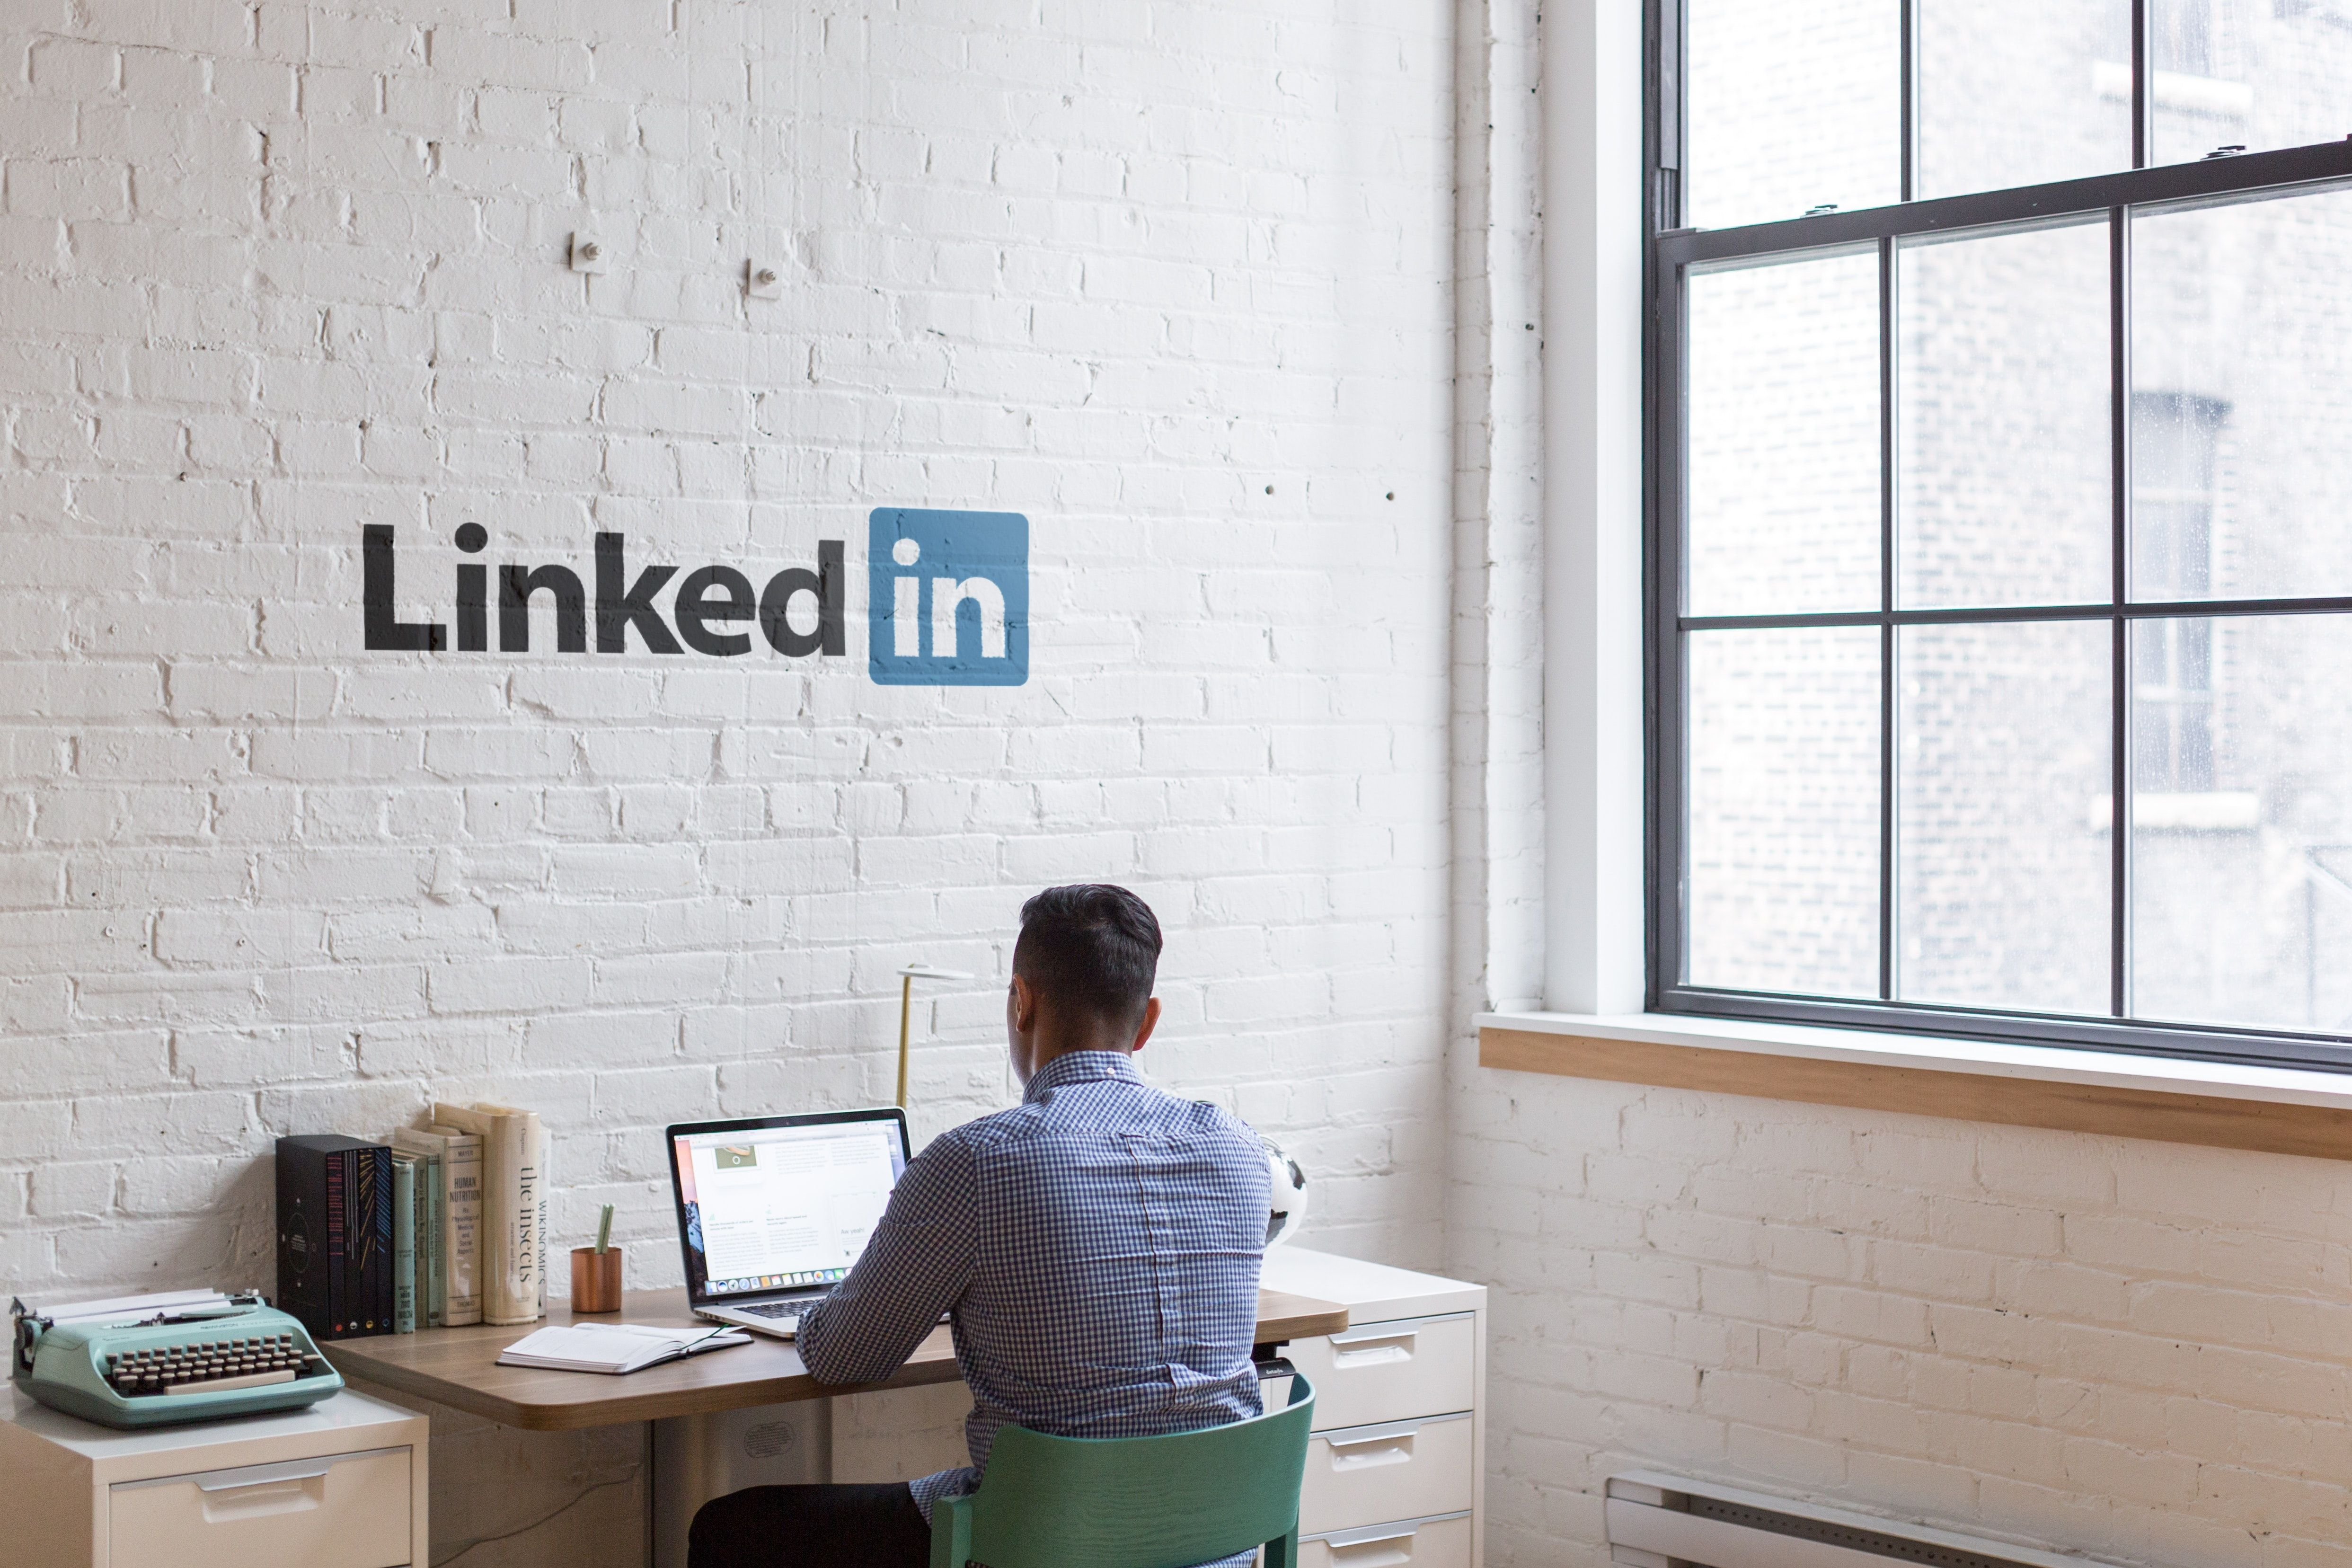 Make your brand known by sharing SMM content on LinkedIn